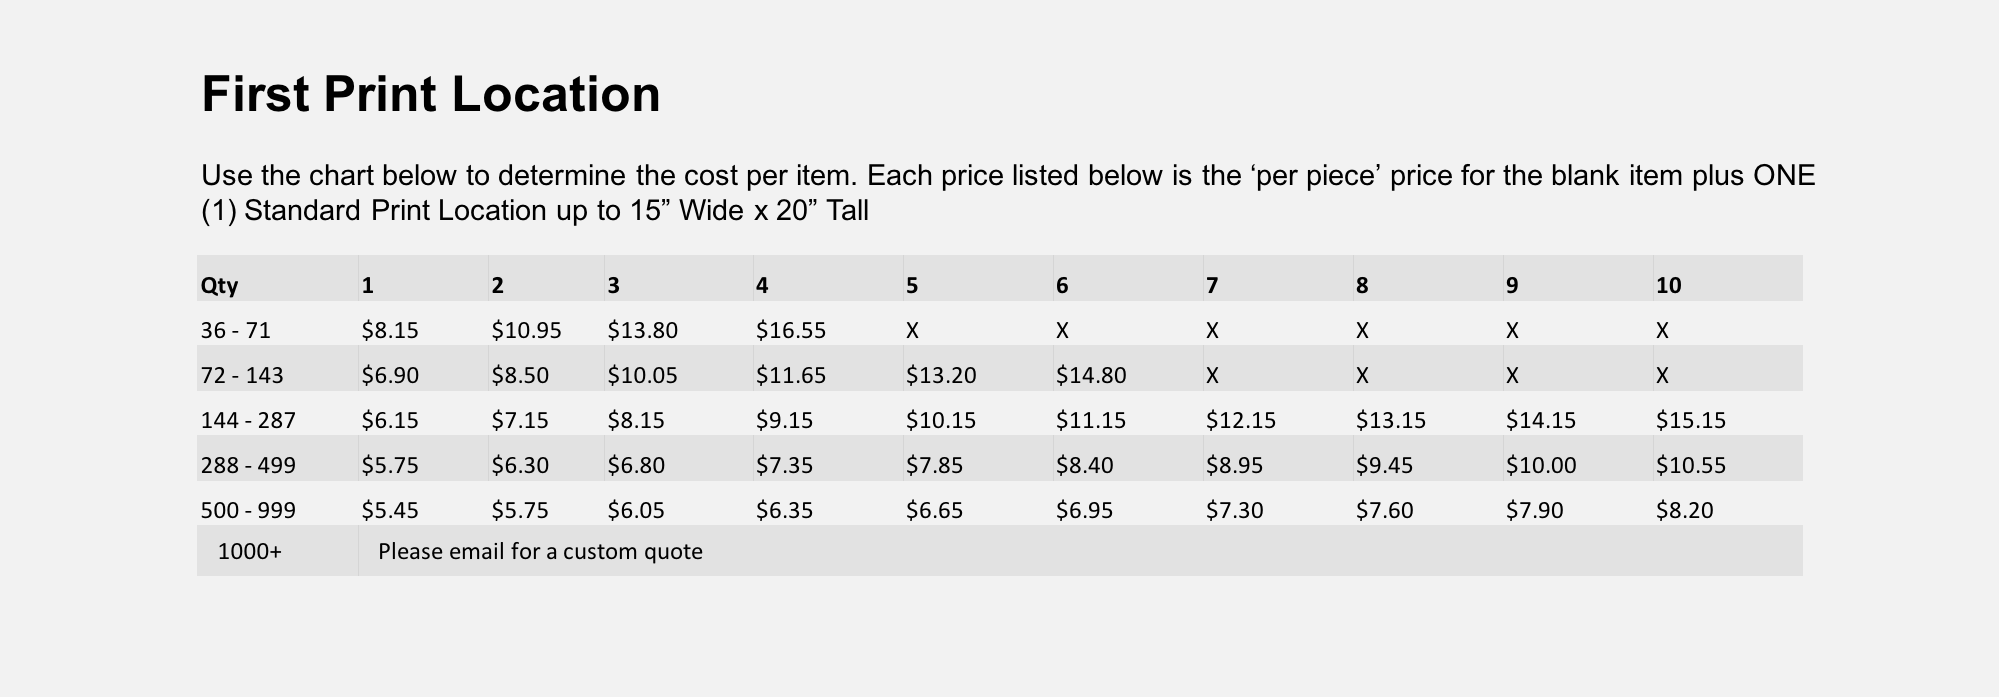 3600_Pricing.png